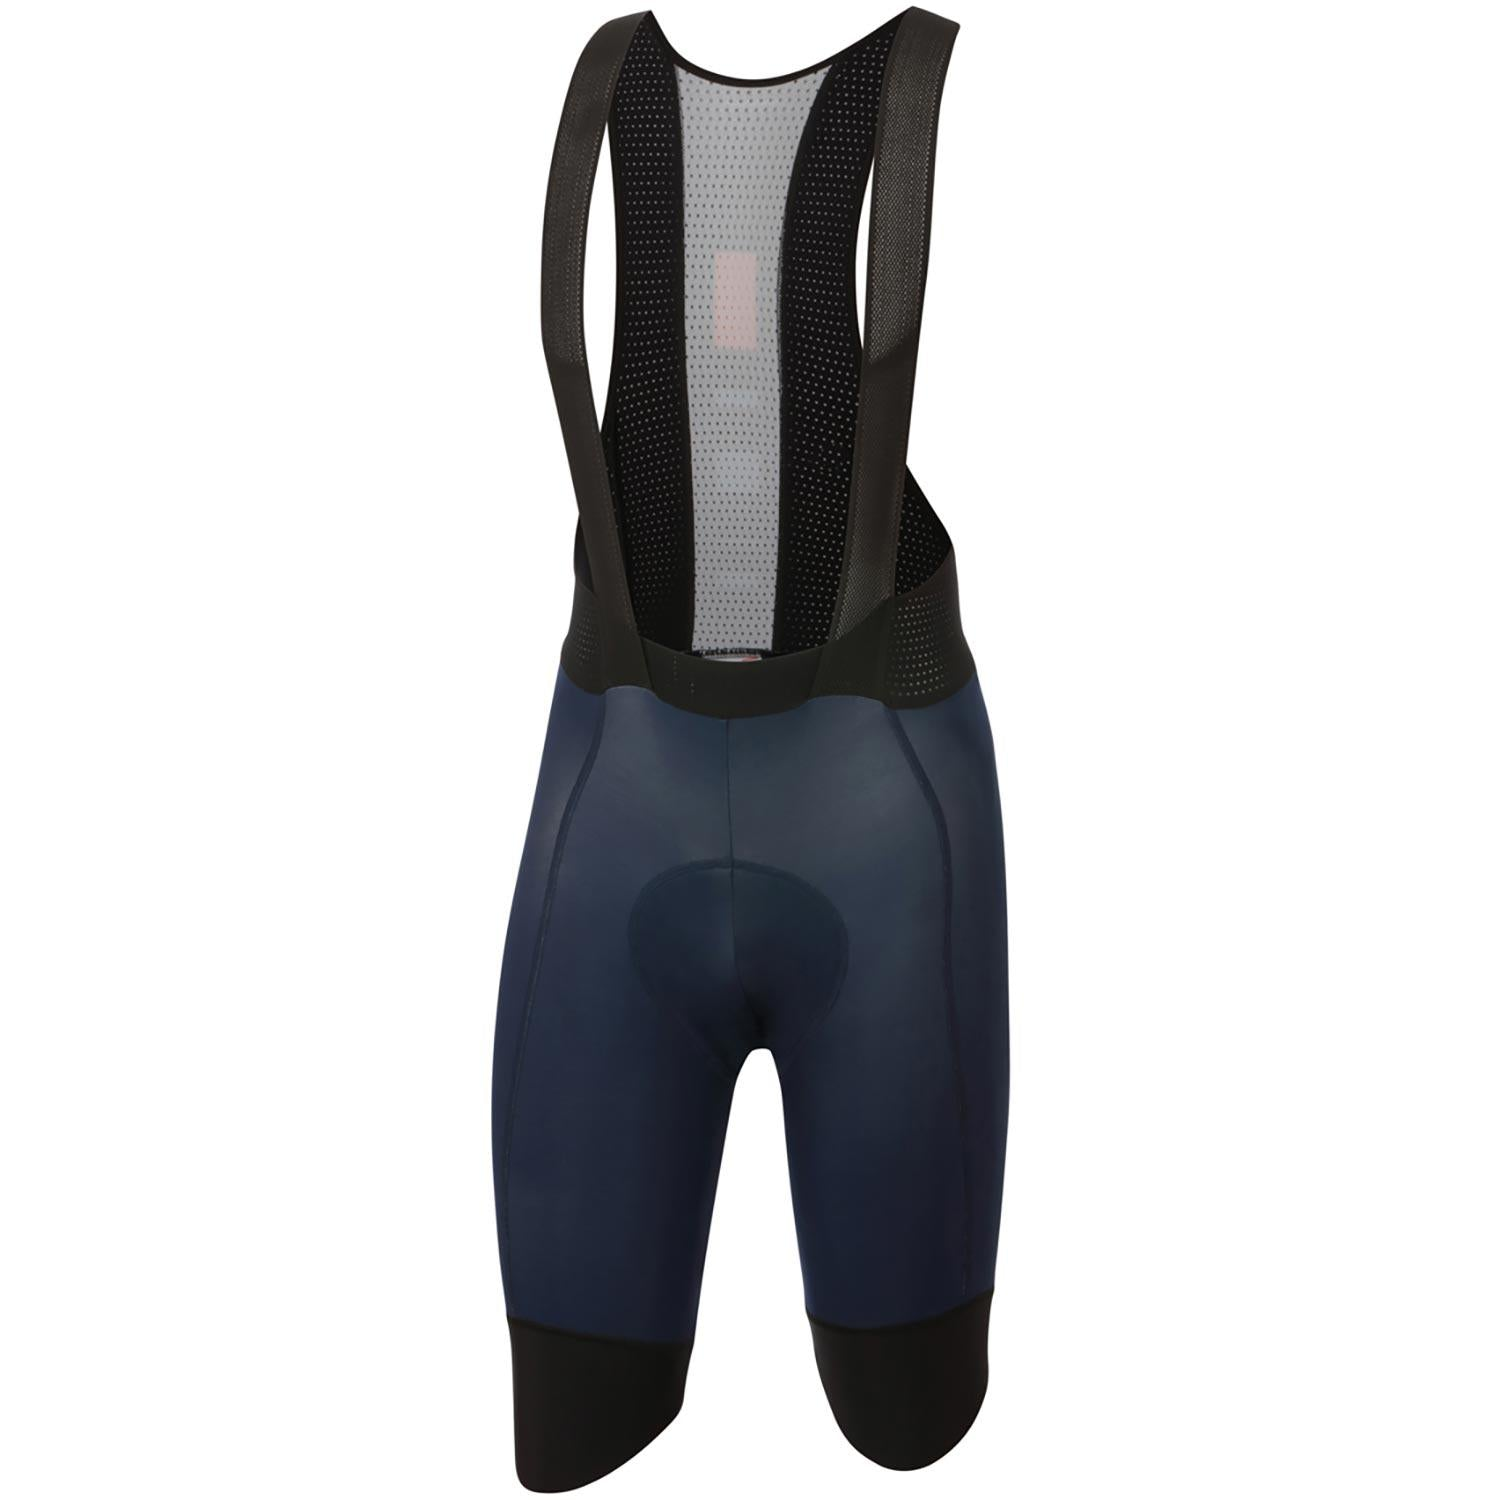 Sportful-Sportful BodyFit Pro Thermal Bib Shorts-Blue-S-SF205040132-saddleback-elite-performance-cycling